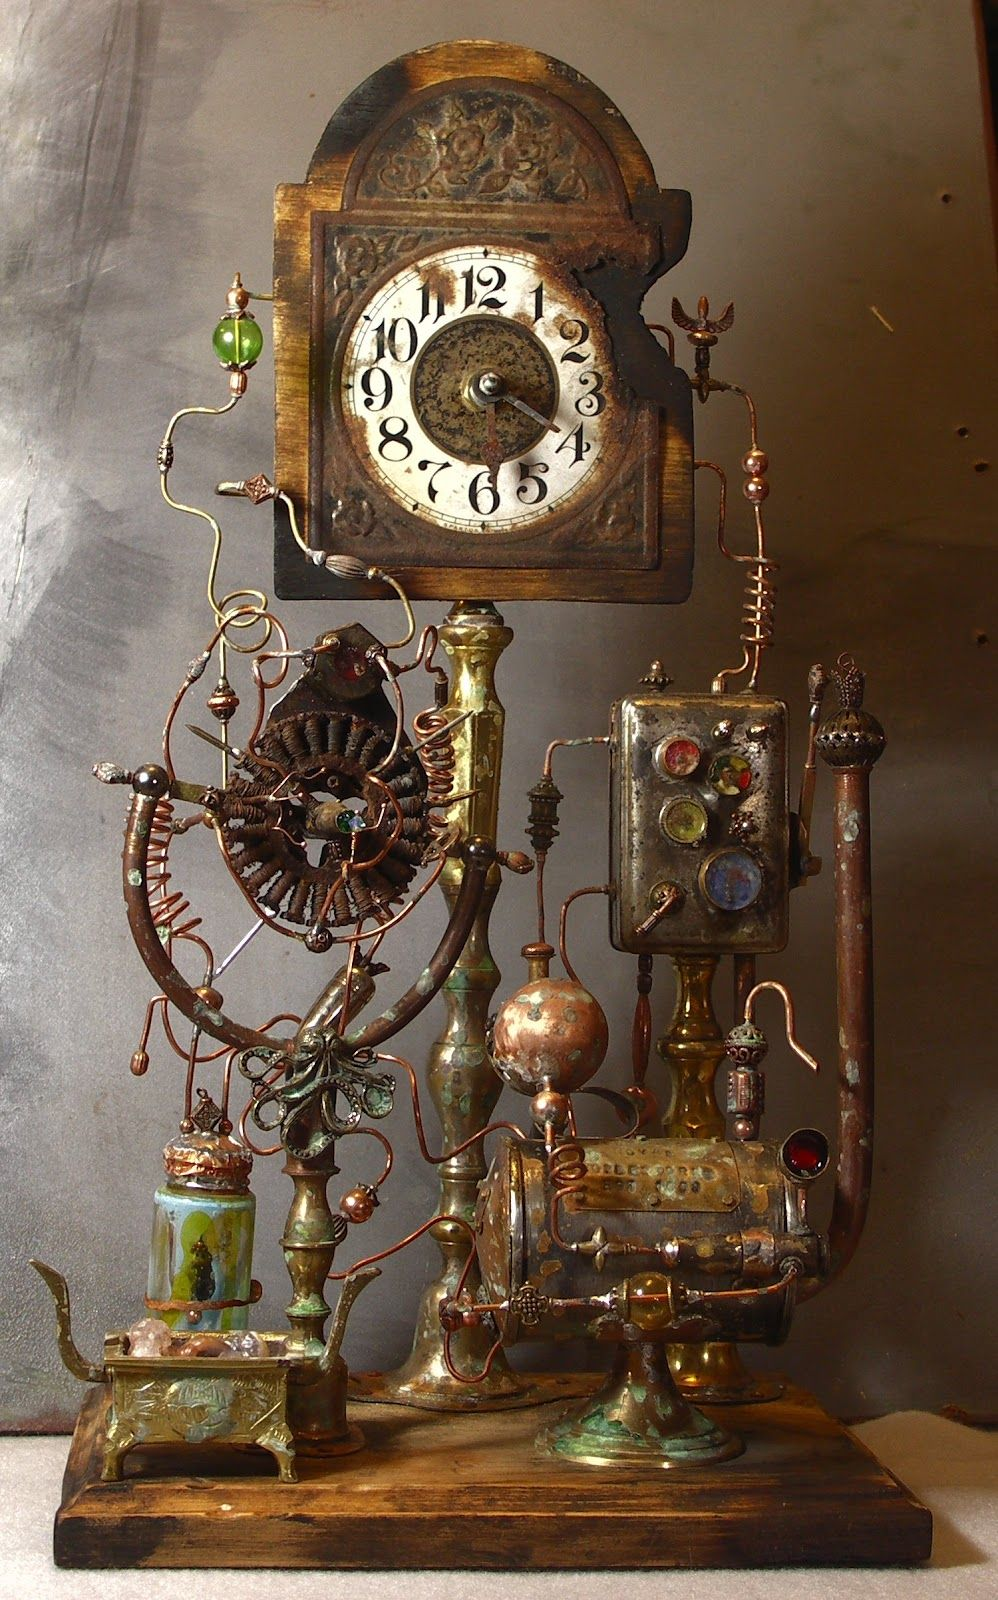 Capt. Bland' Steam Powered Clock Punk Styles